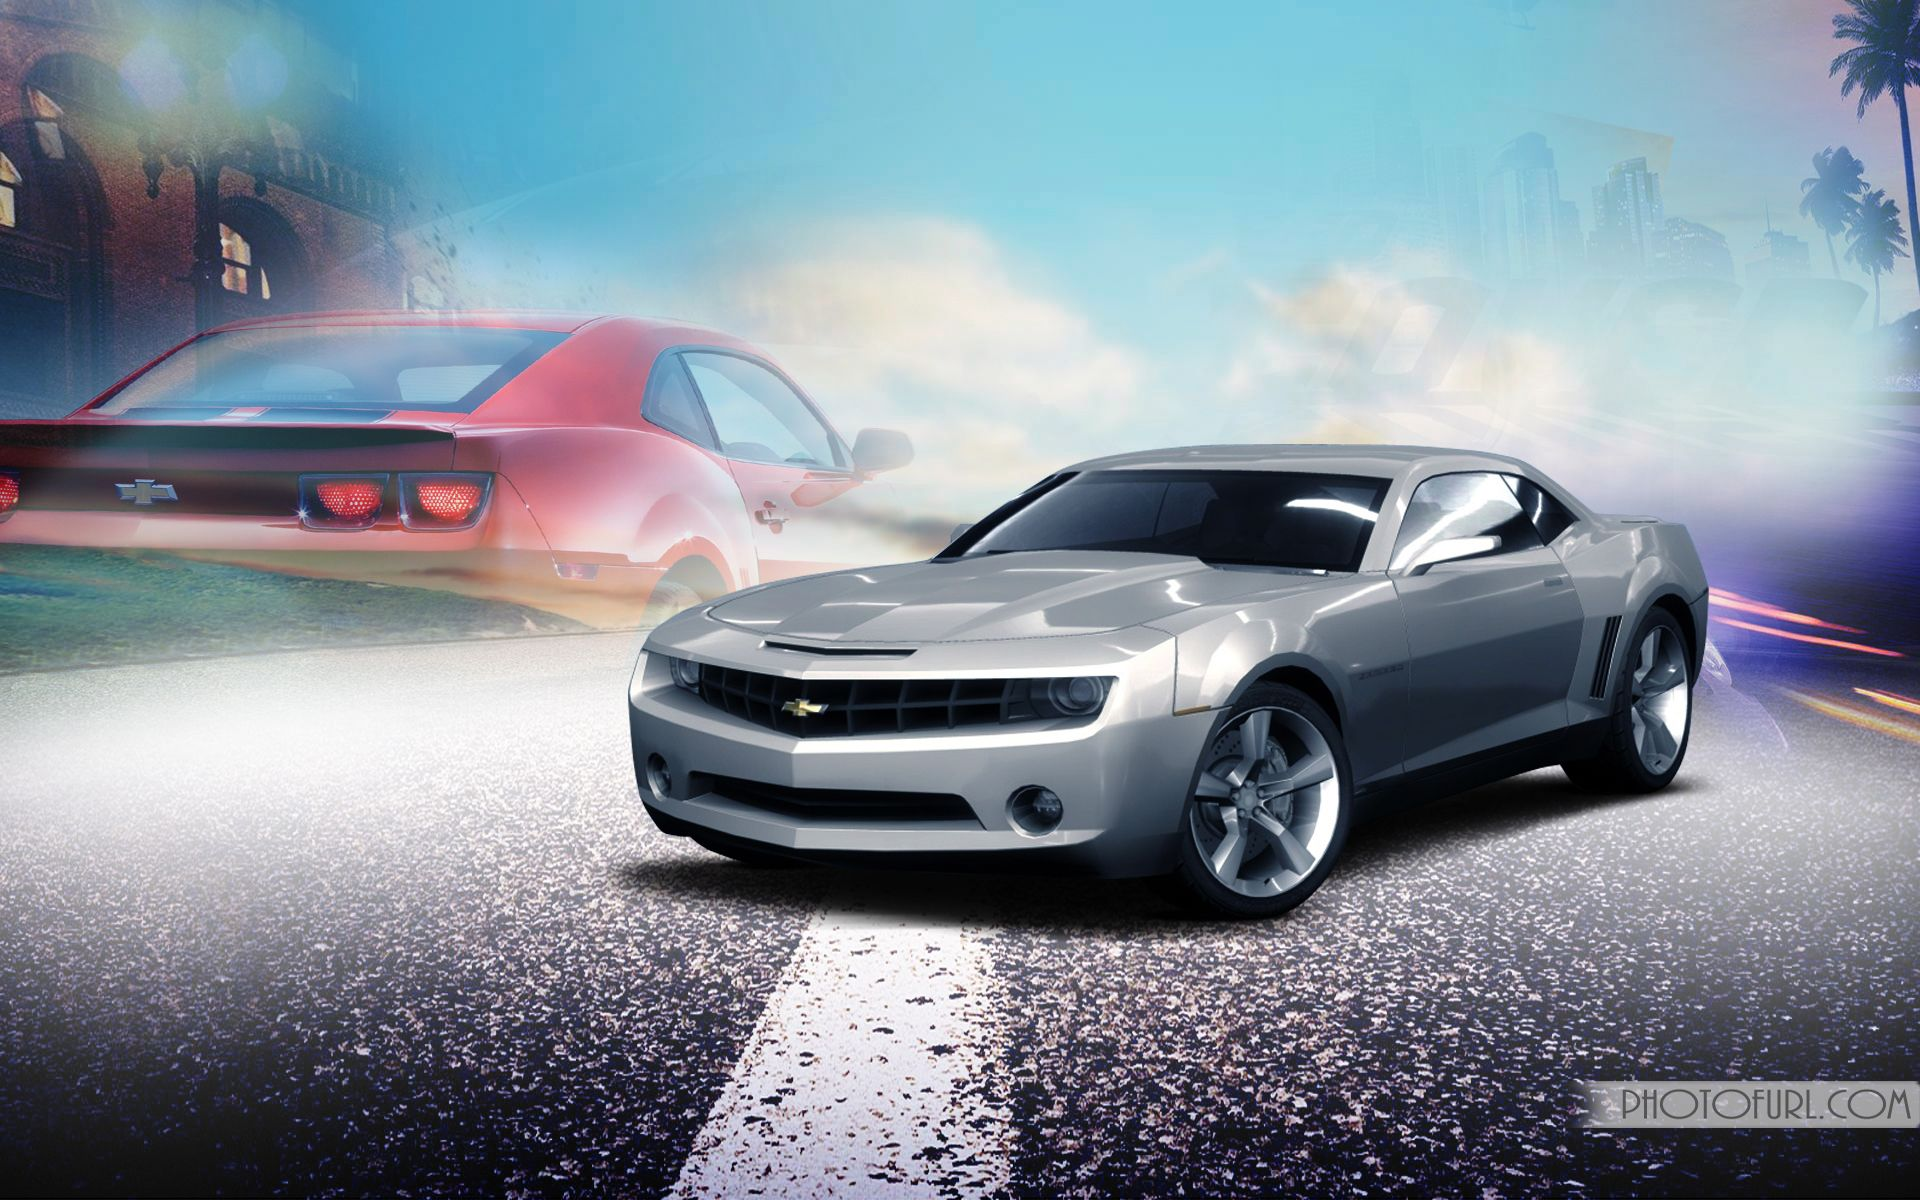 Free Camaro Screensavers Wallpapers Desktop Themes Camaro Car In